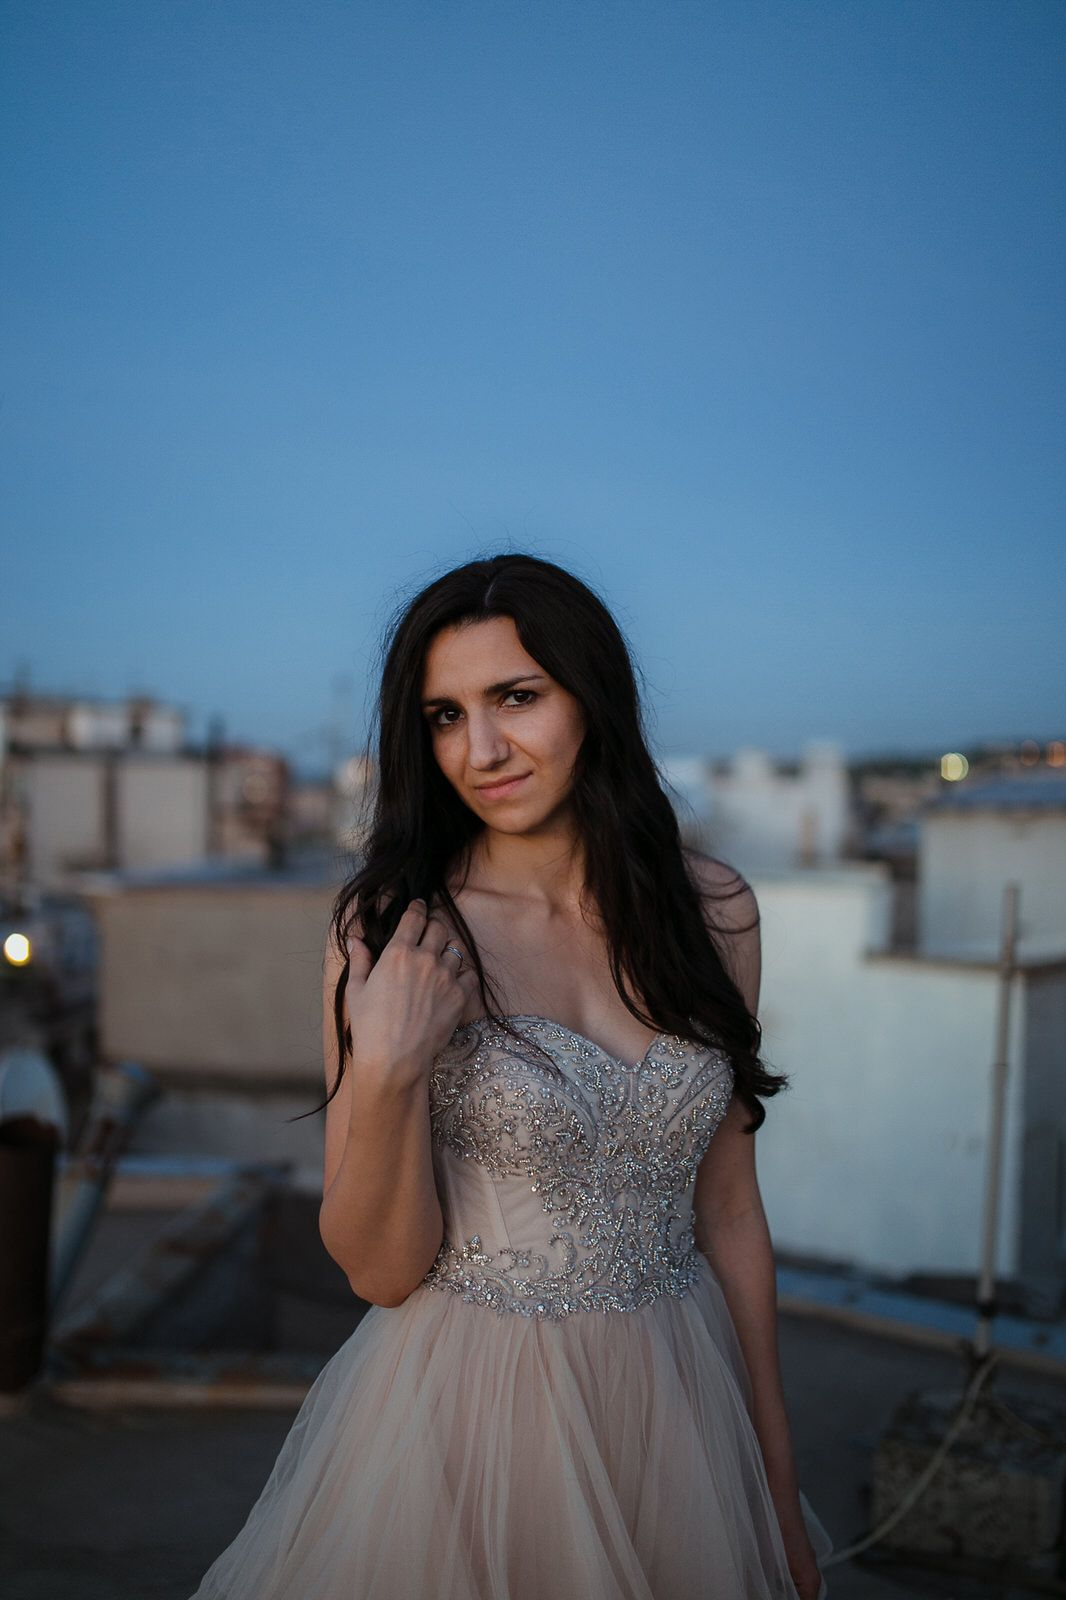 Beautiful bride portrait on a rooftop